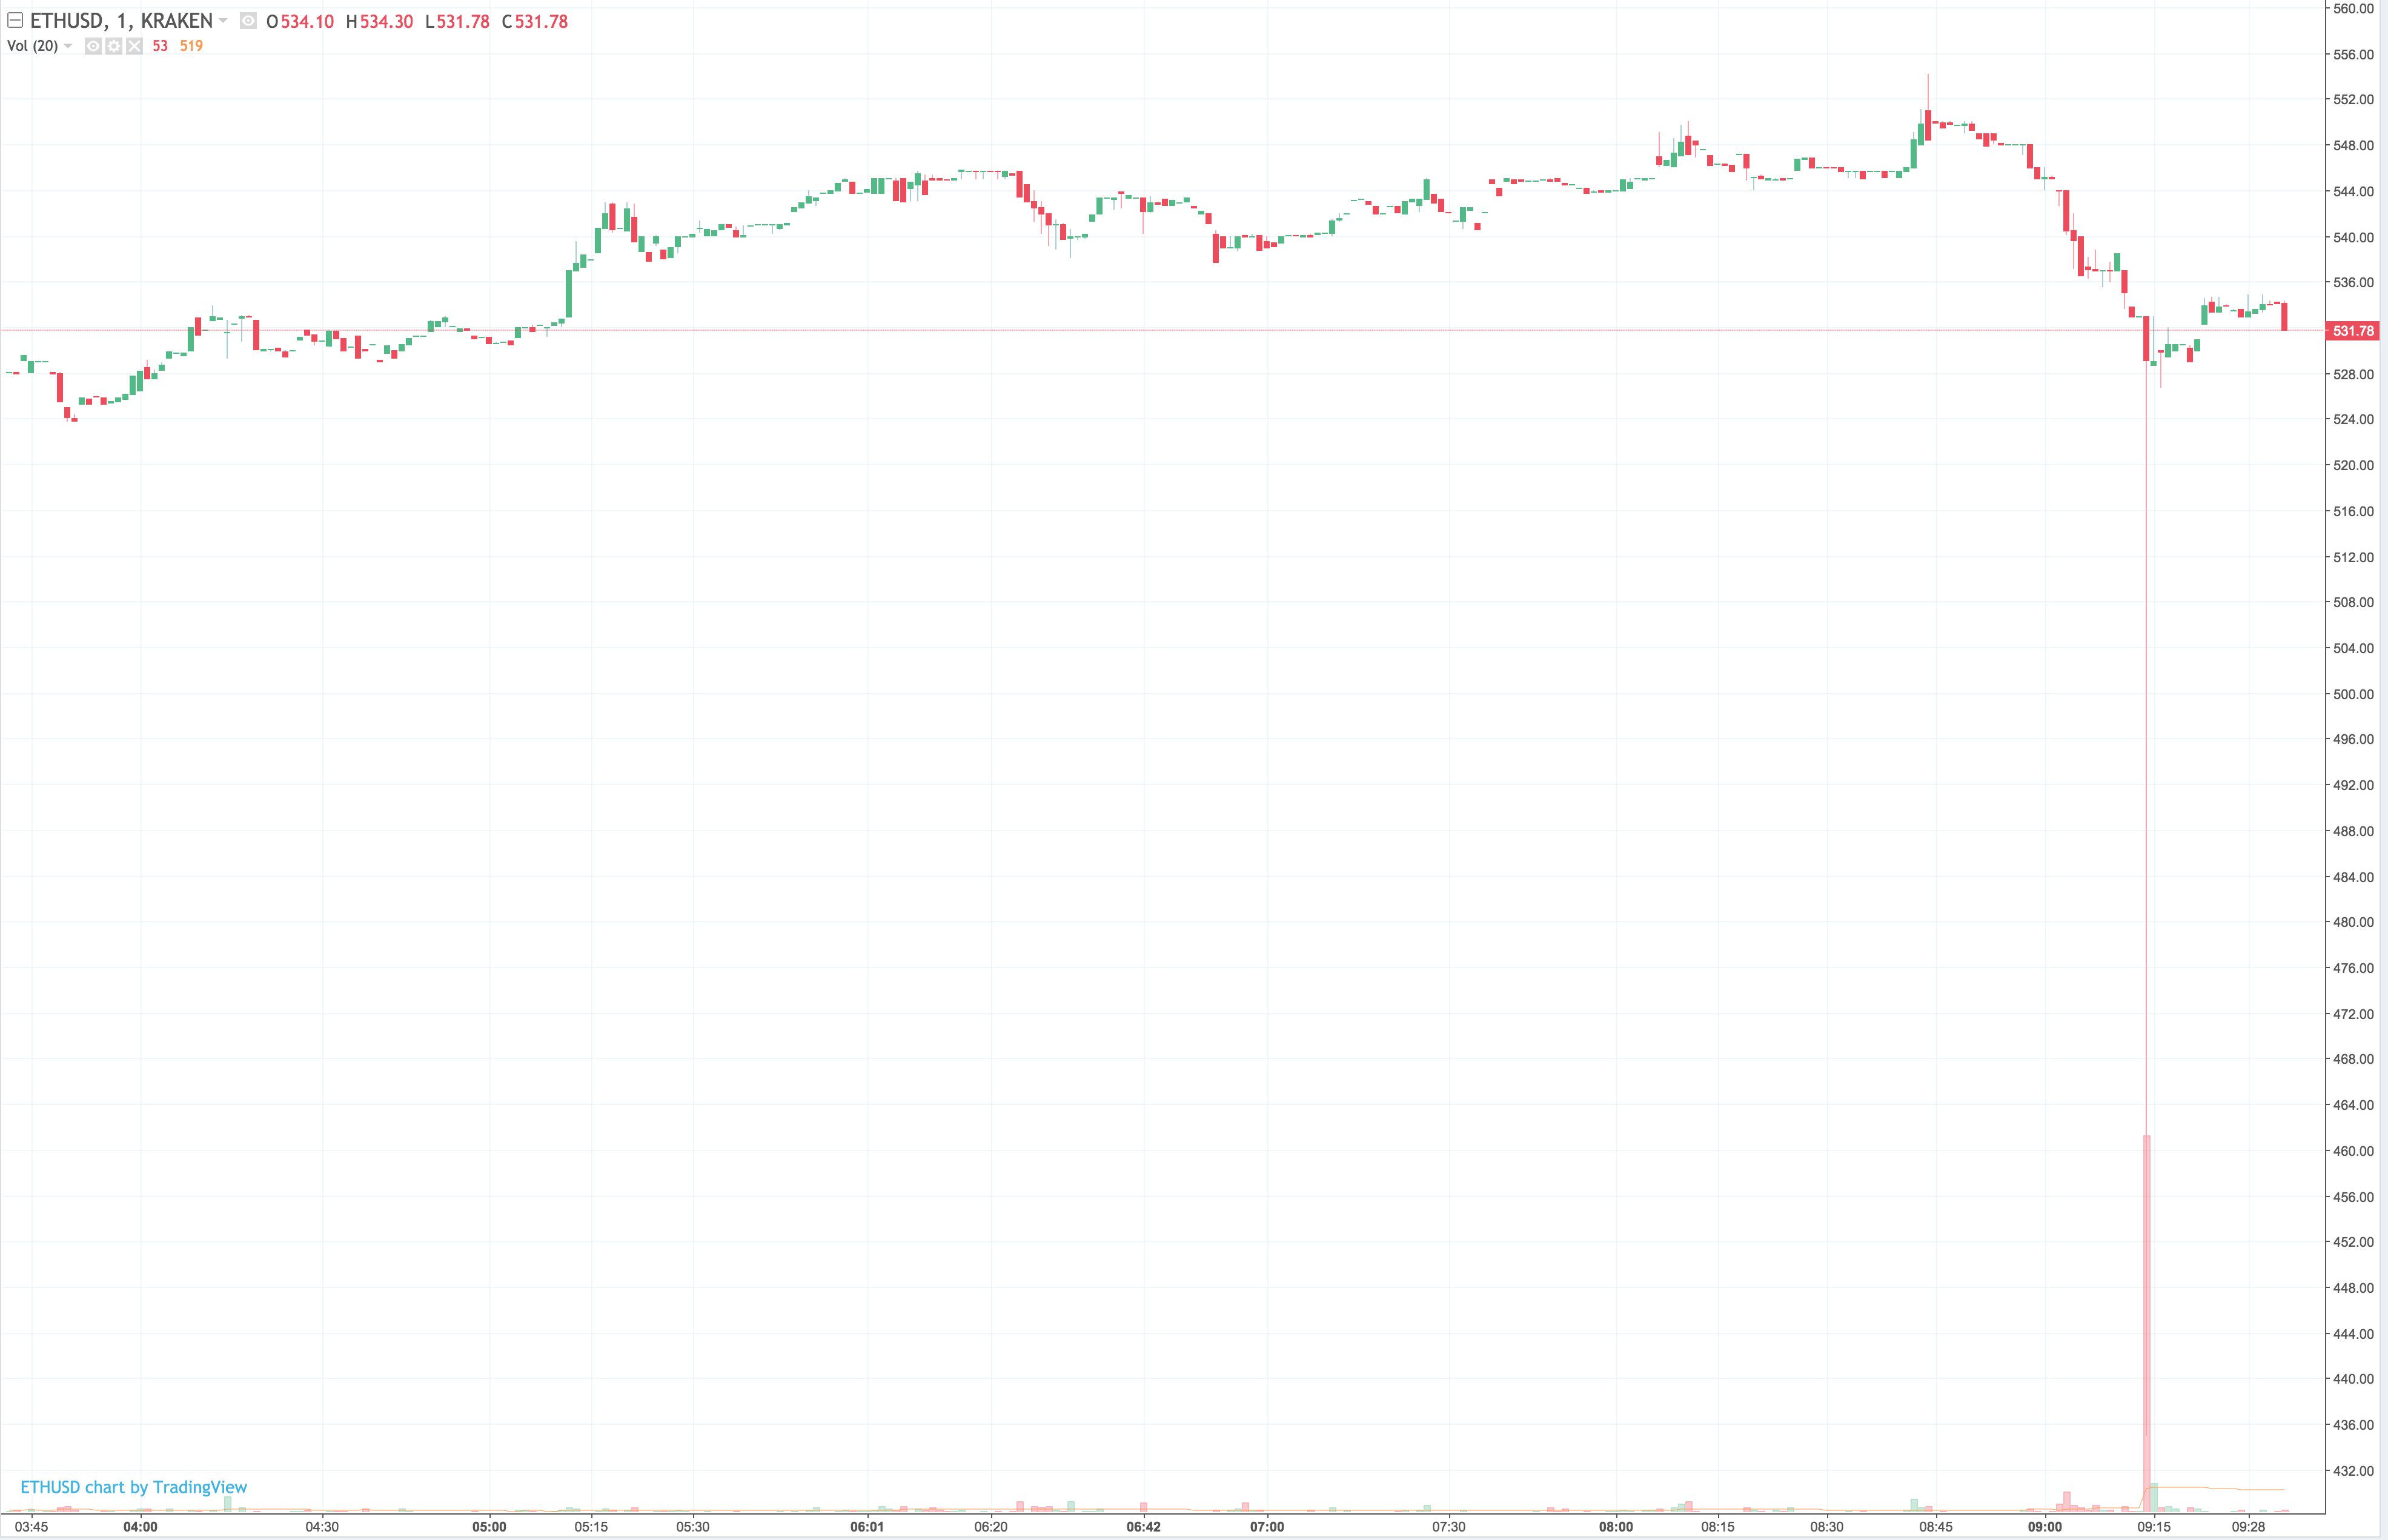 Bitcoin's Big Price Drop Is the Latest in a Long History of Flash Crashes